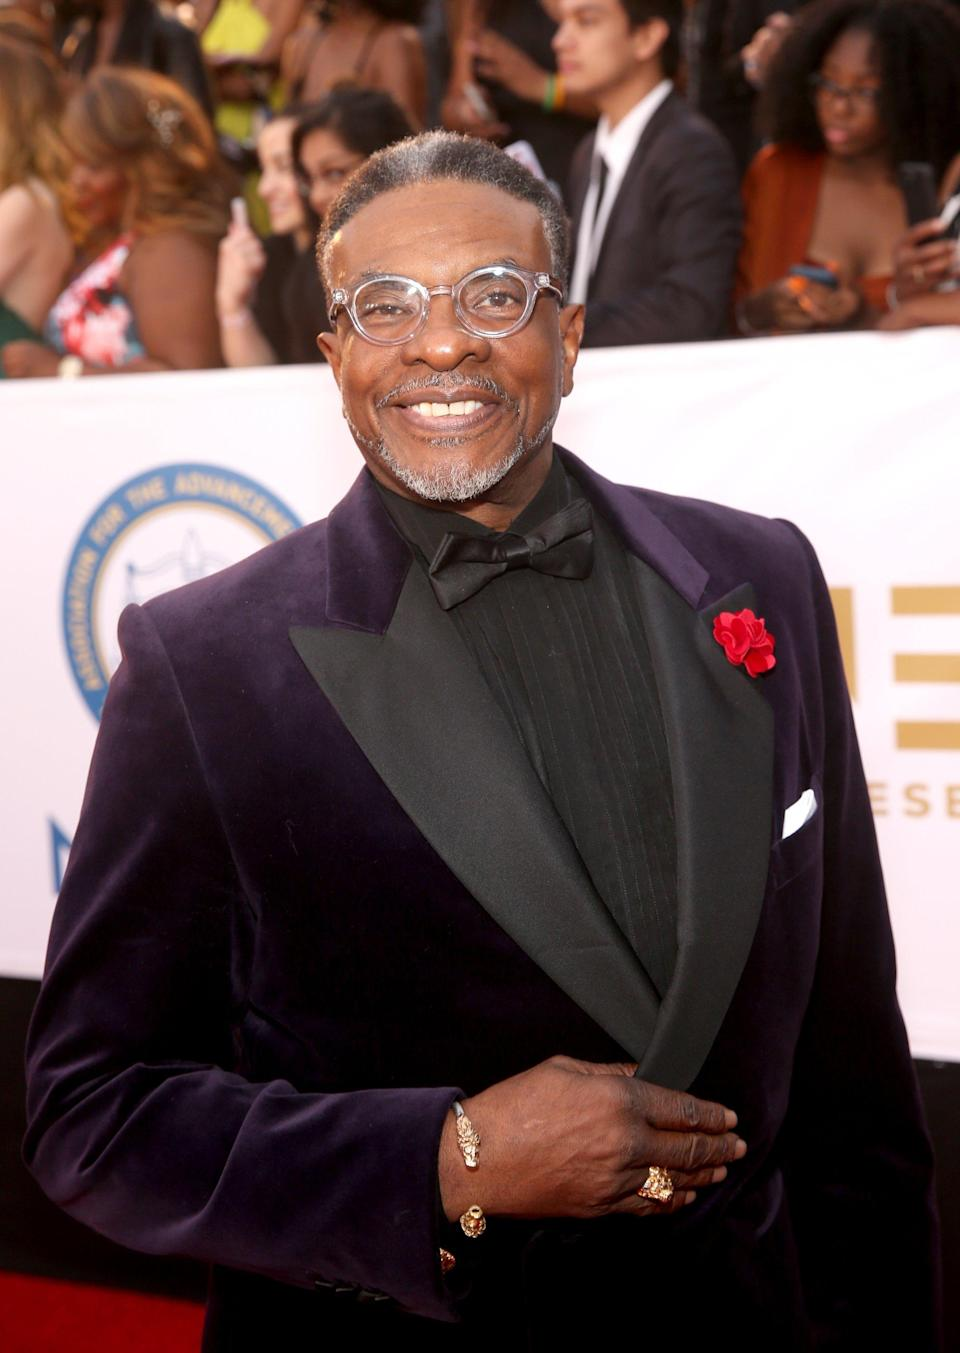 <p>David has starred in countless films and cultivated an Emmy Award-winning voice-over career over the years. He's been in cult-favorite films like <strong>The Chronicles of Riddick</strong> and <strong>Requiem For a Dream</strong>, as well as mainstream films such as <strong>Crash</strong>, <strong>The Replacements</strong>, and <strong>Barbershop</strong>. He's featured in many TV shows and has done voice-over work for everything from video games and films to cartoons.</p>